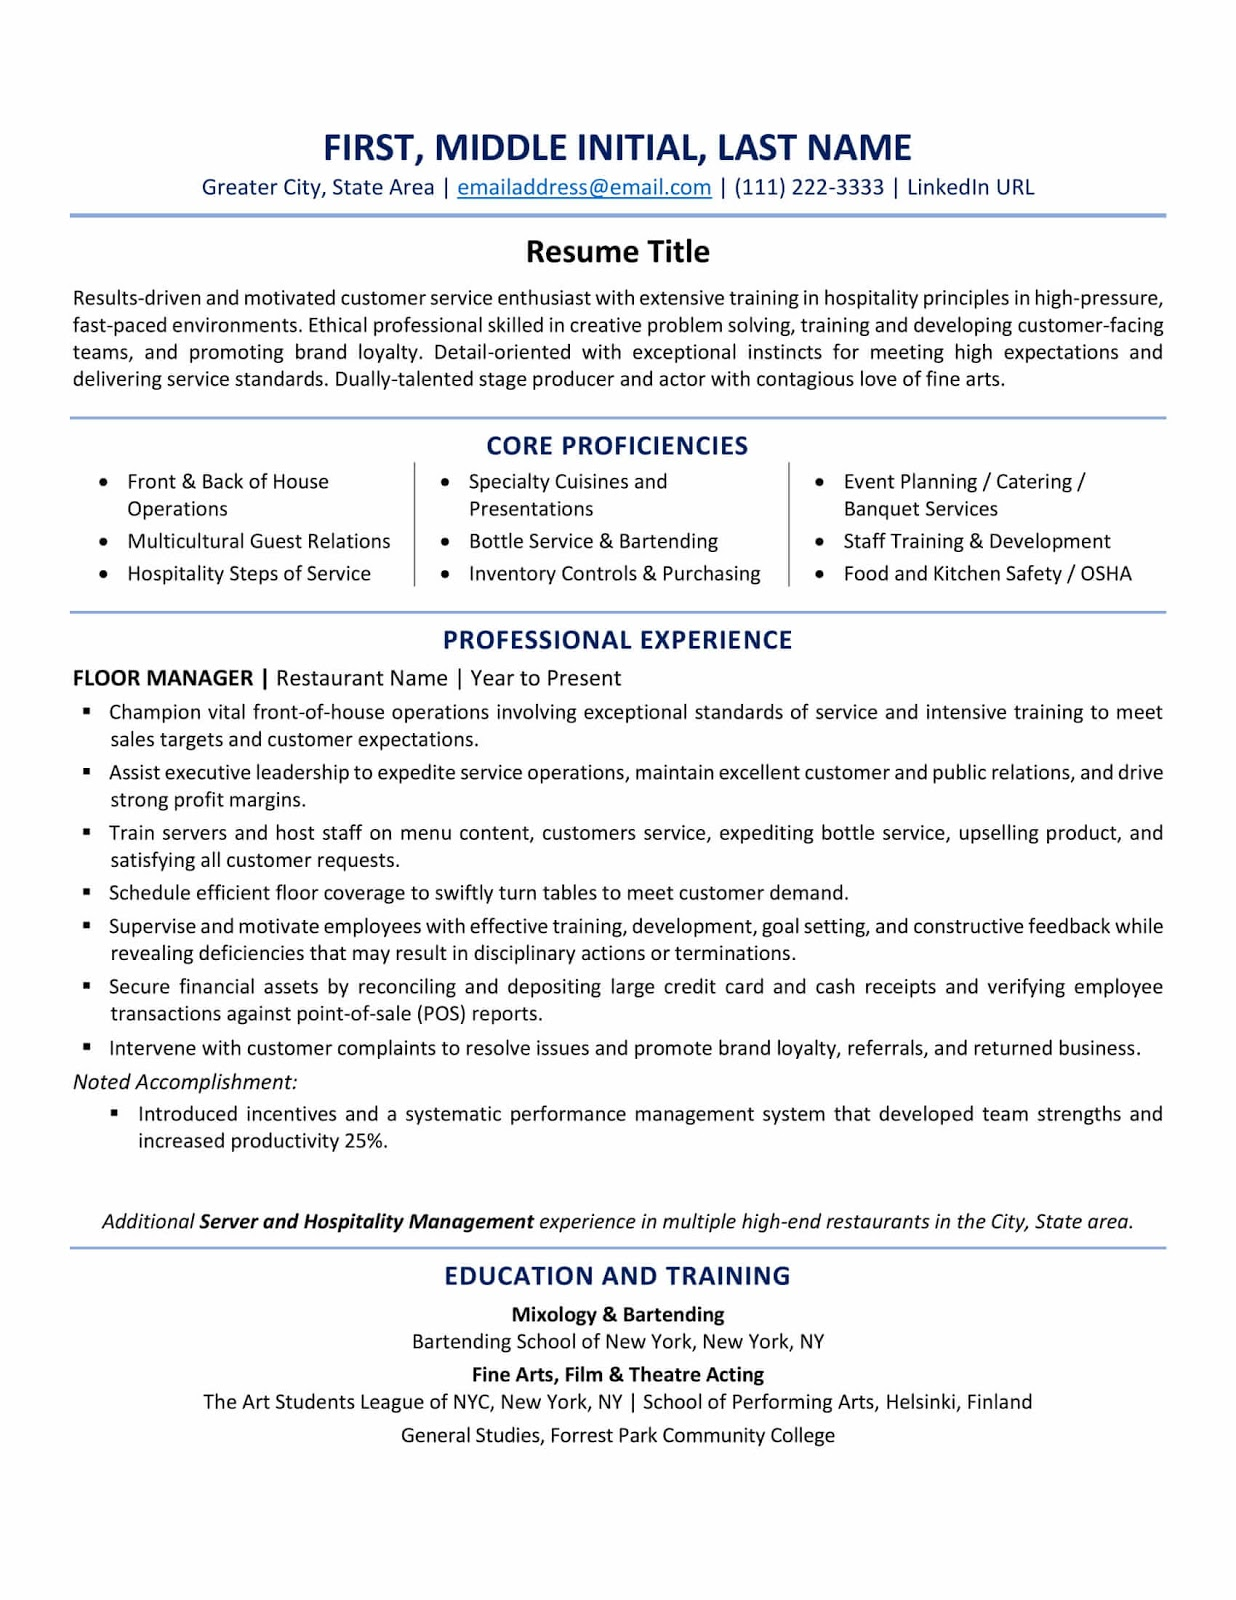 resume format best tips and examples updated guidelines sewing skills civil engineer Resume Resume Format Guidelines